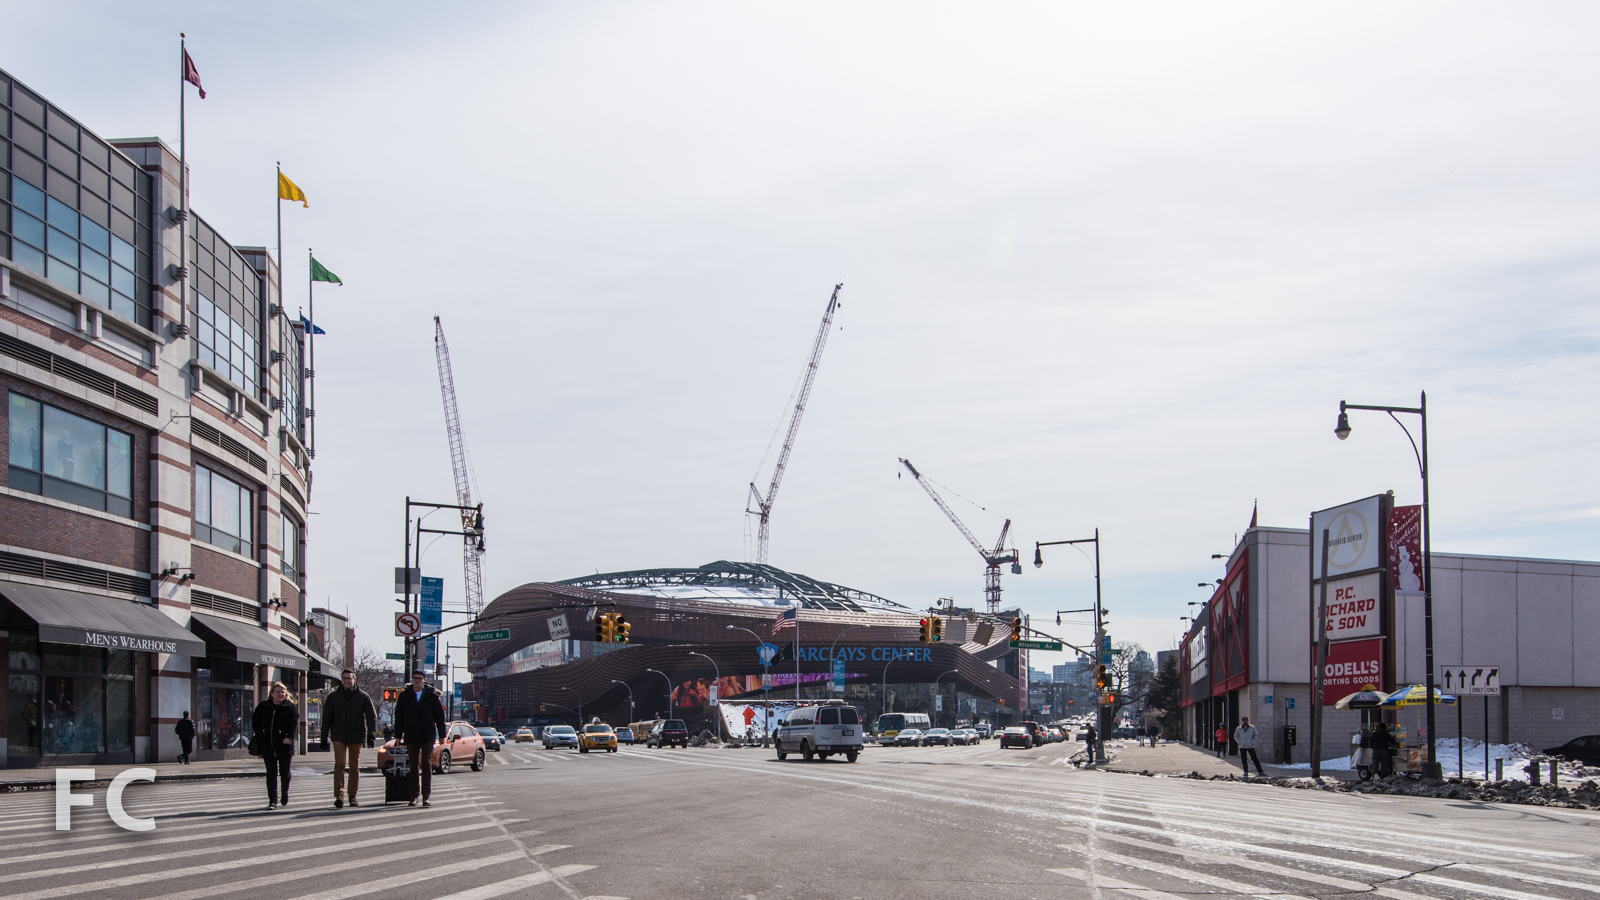 Looking towards Barclays Center from the intersection of Flatbush and Atlantic Avenues.